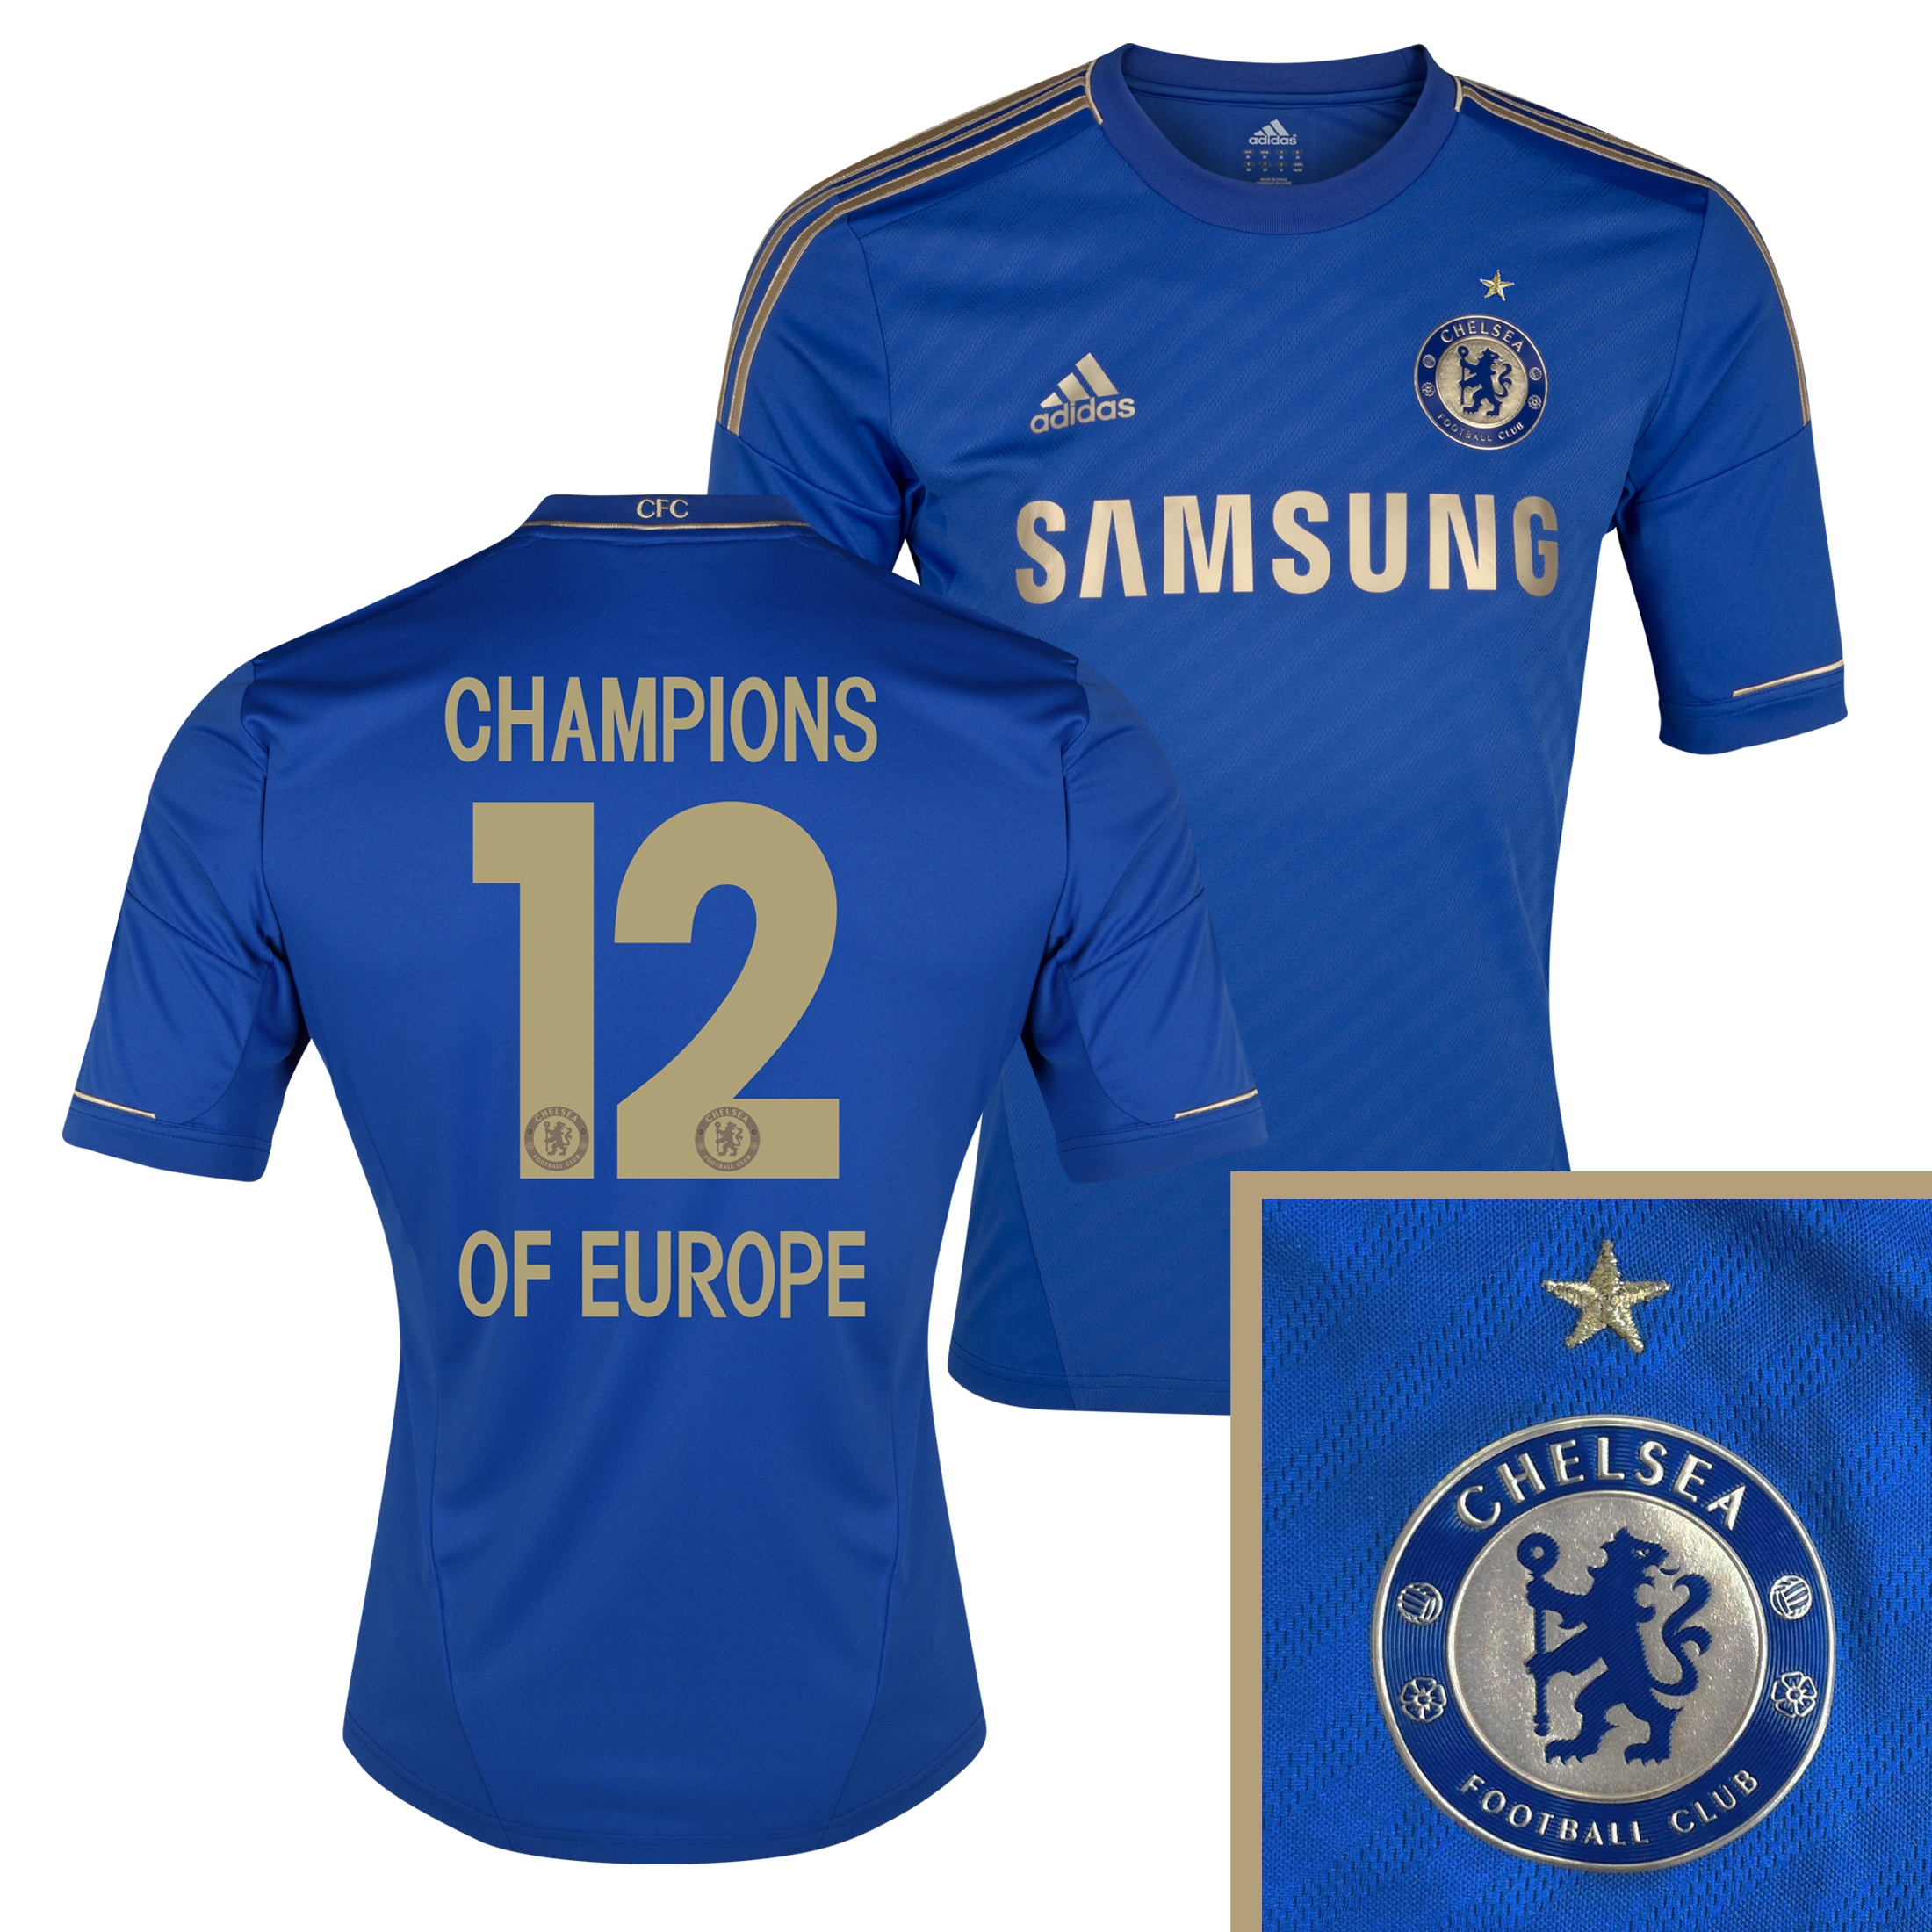 Chelsea Home Shirt 2012/13 - Youths with Champions 12 Printing including Gold Star